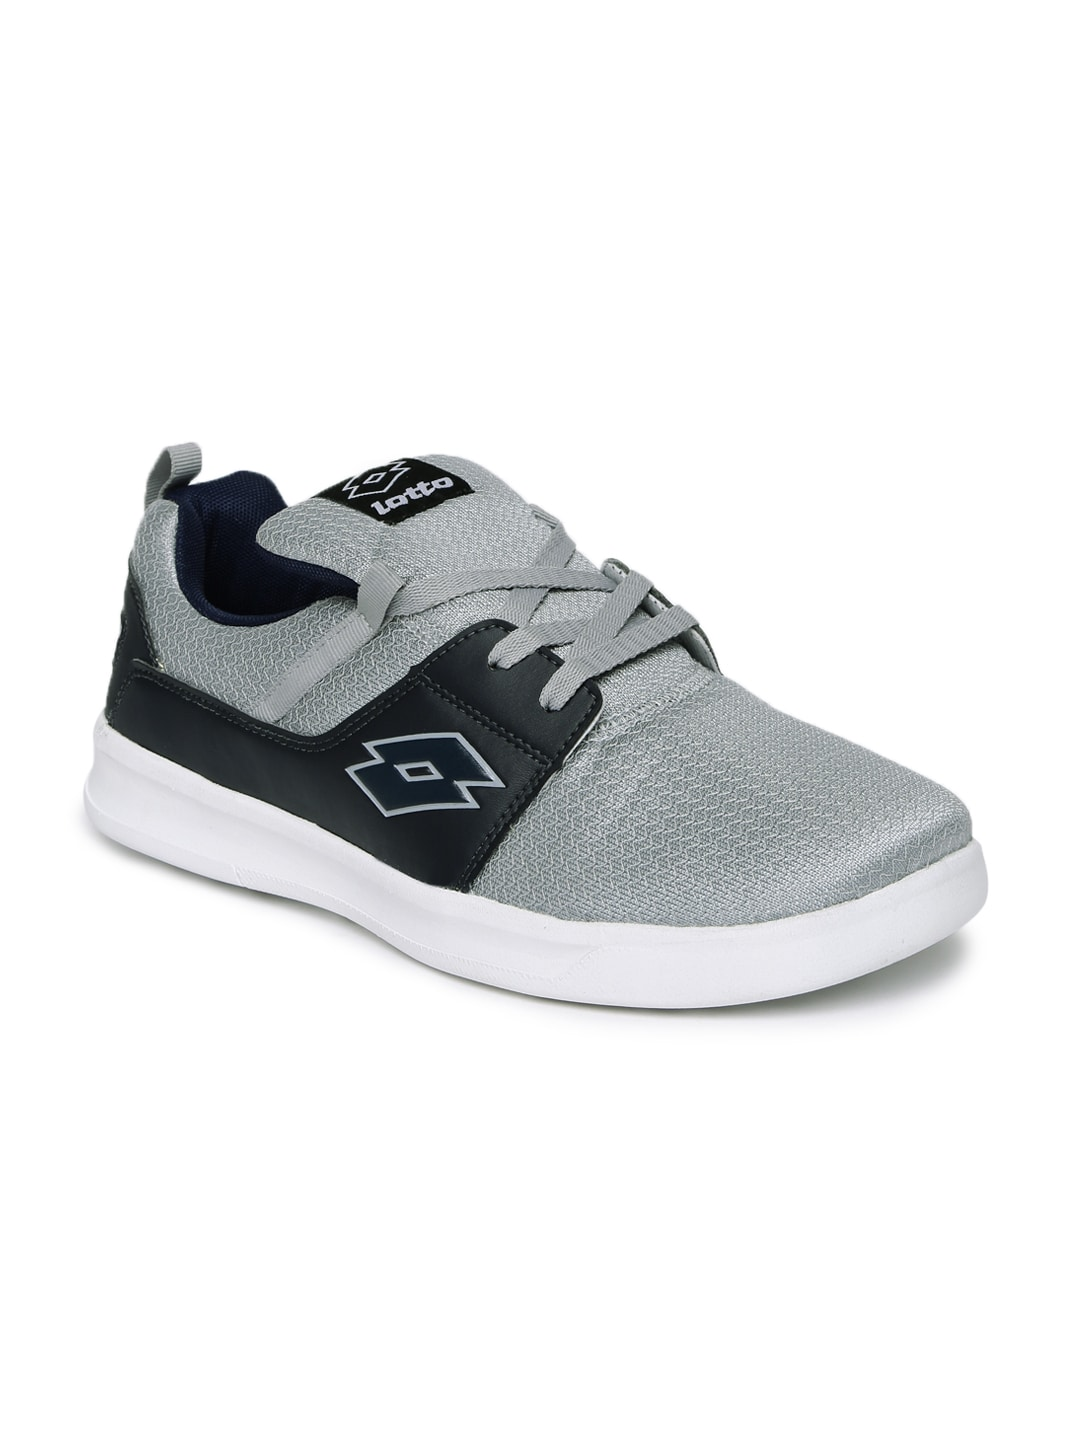 Lotto Shoes Models With Price